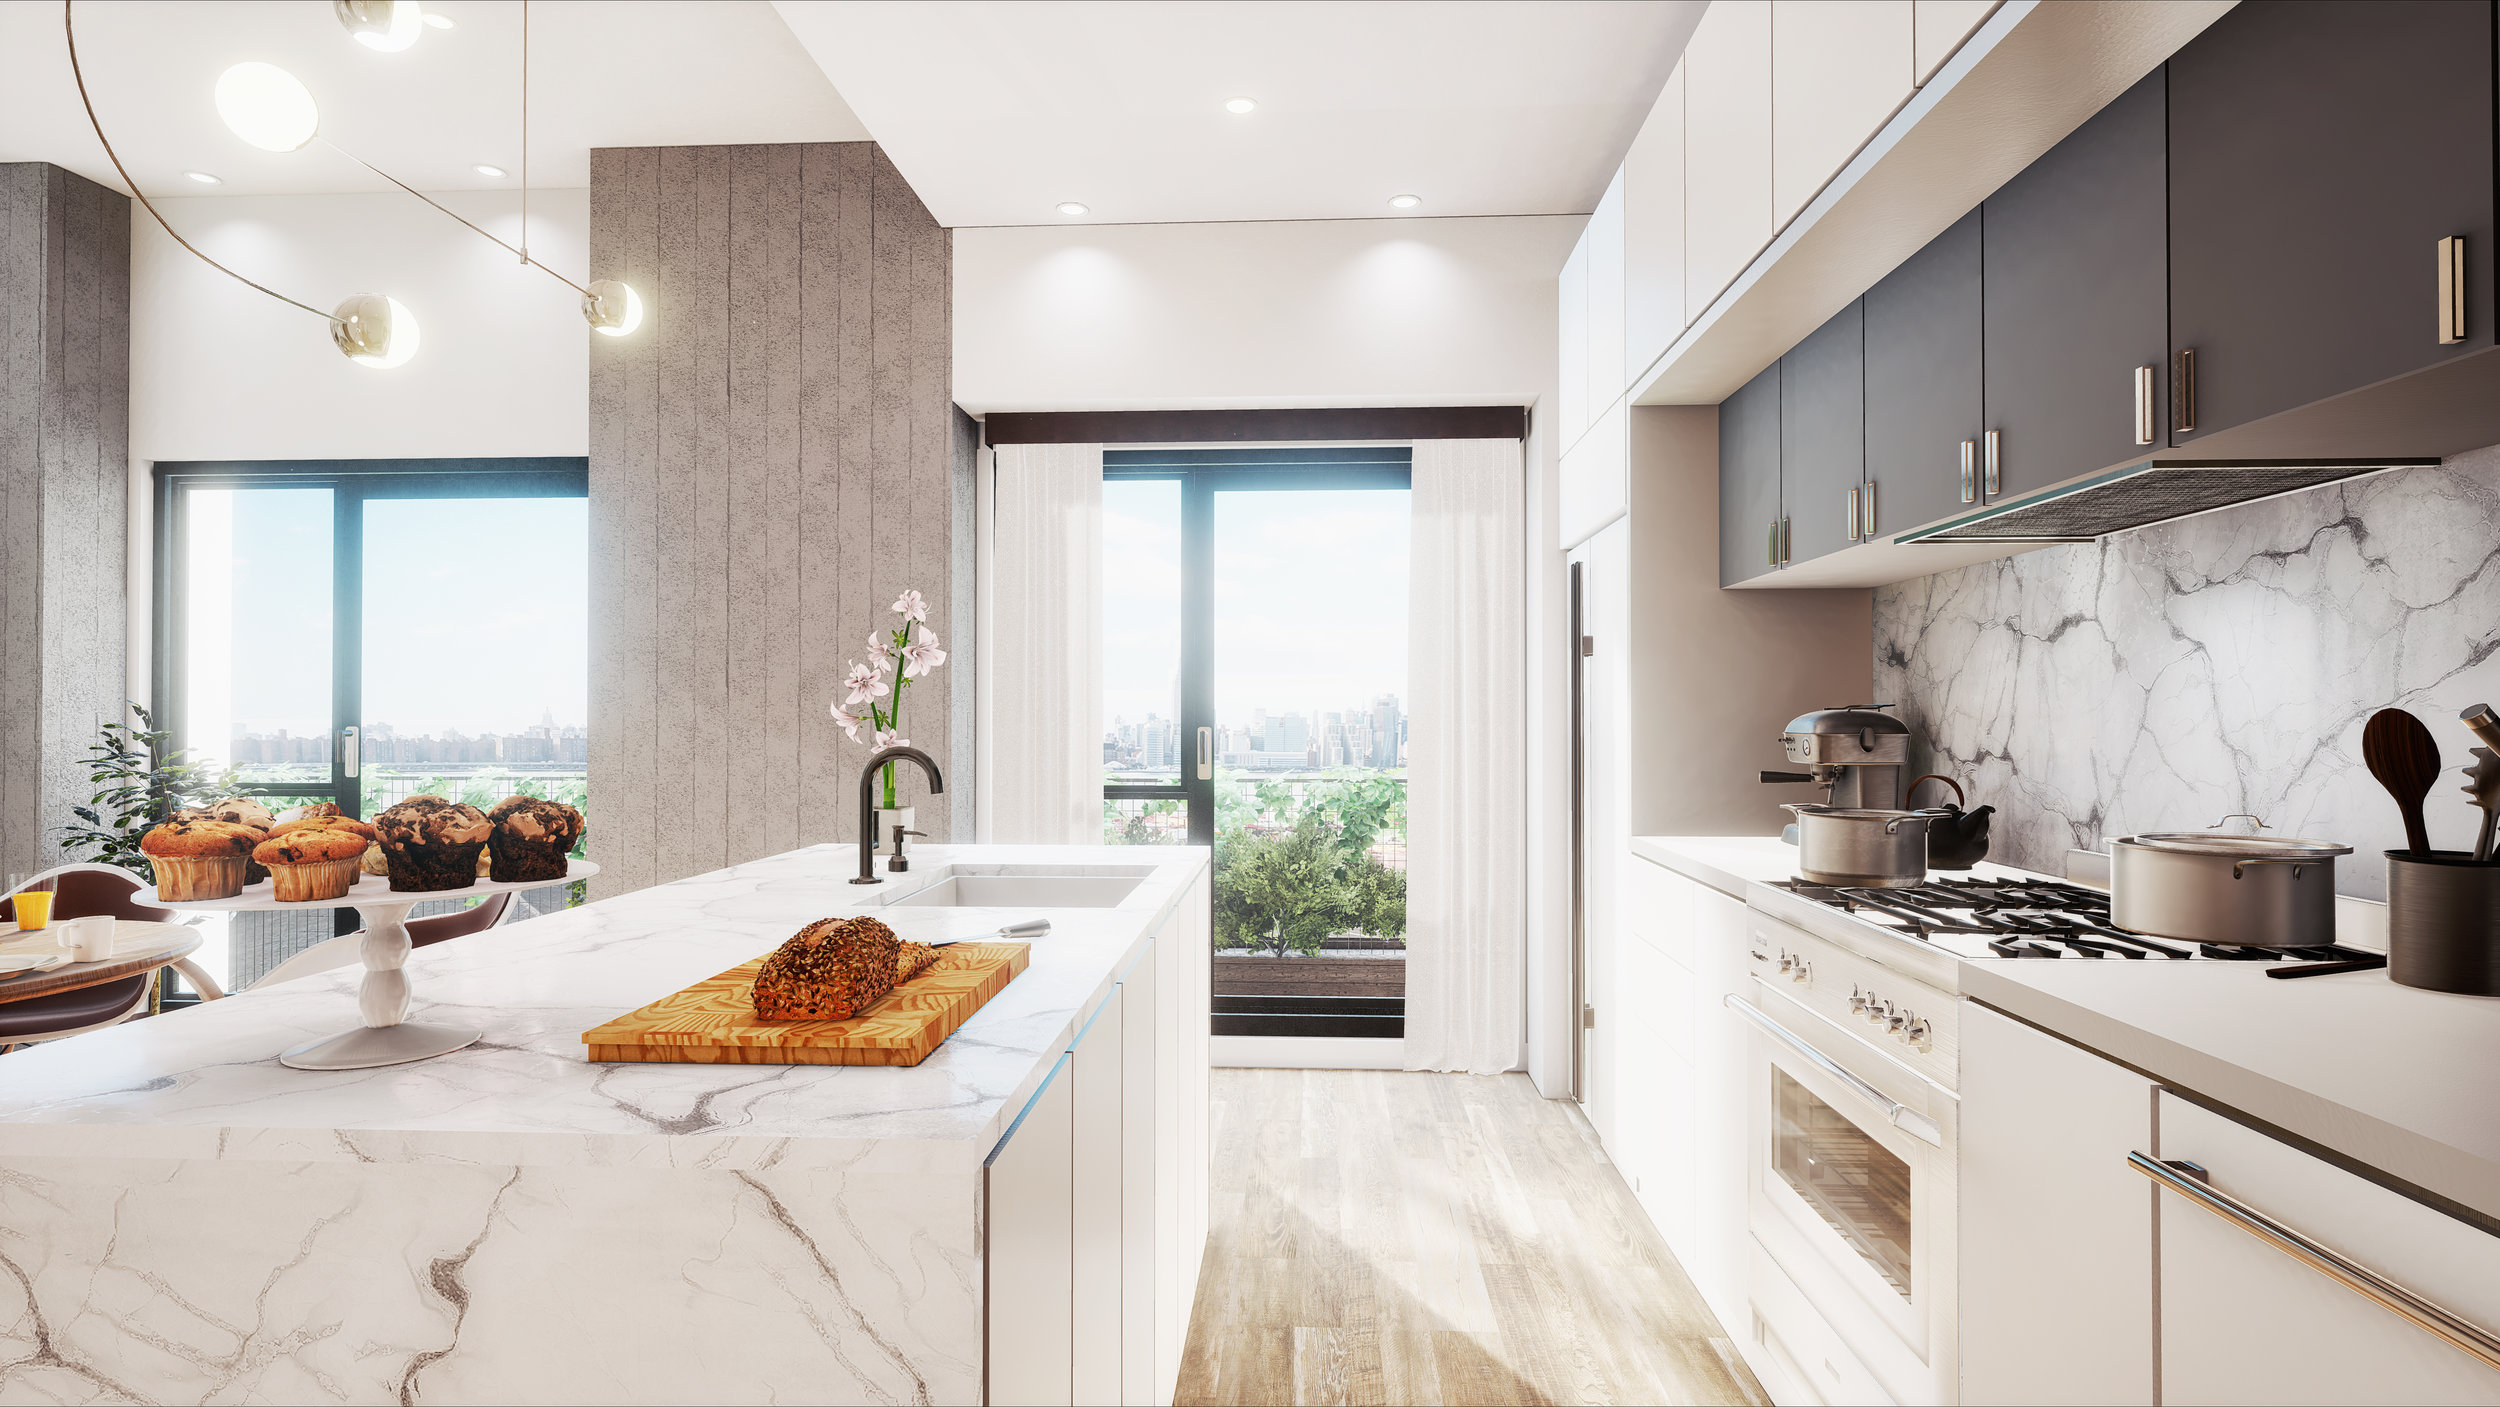 Kitchen_Island-and-Cabinets.jpg